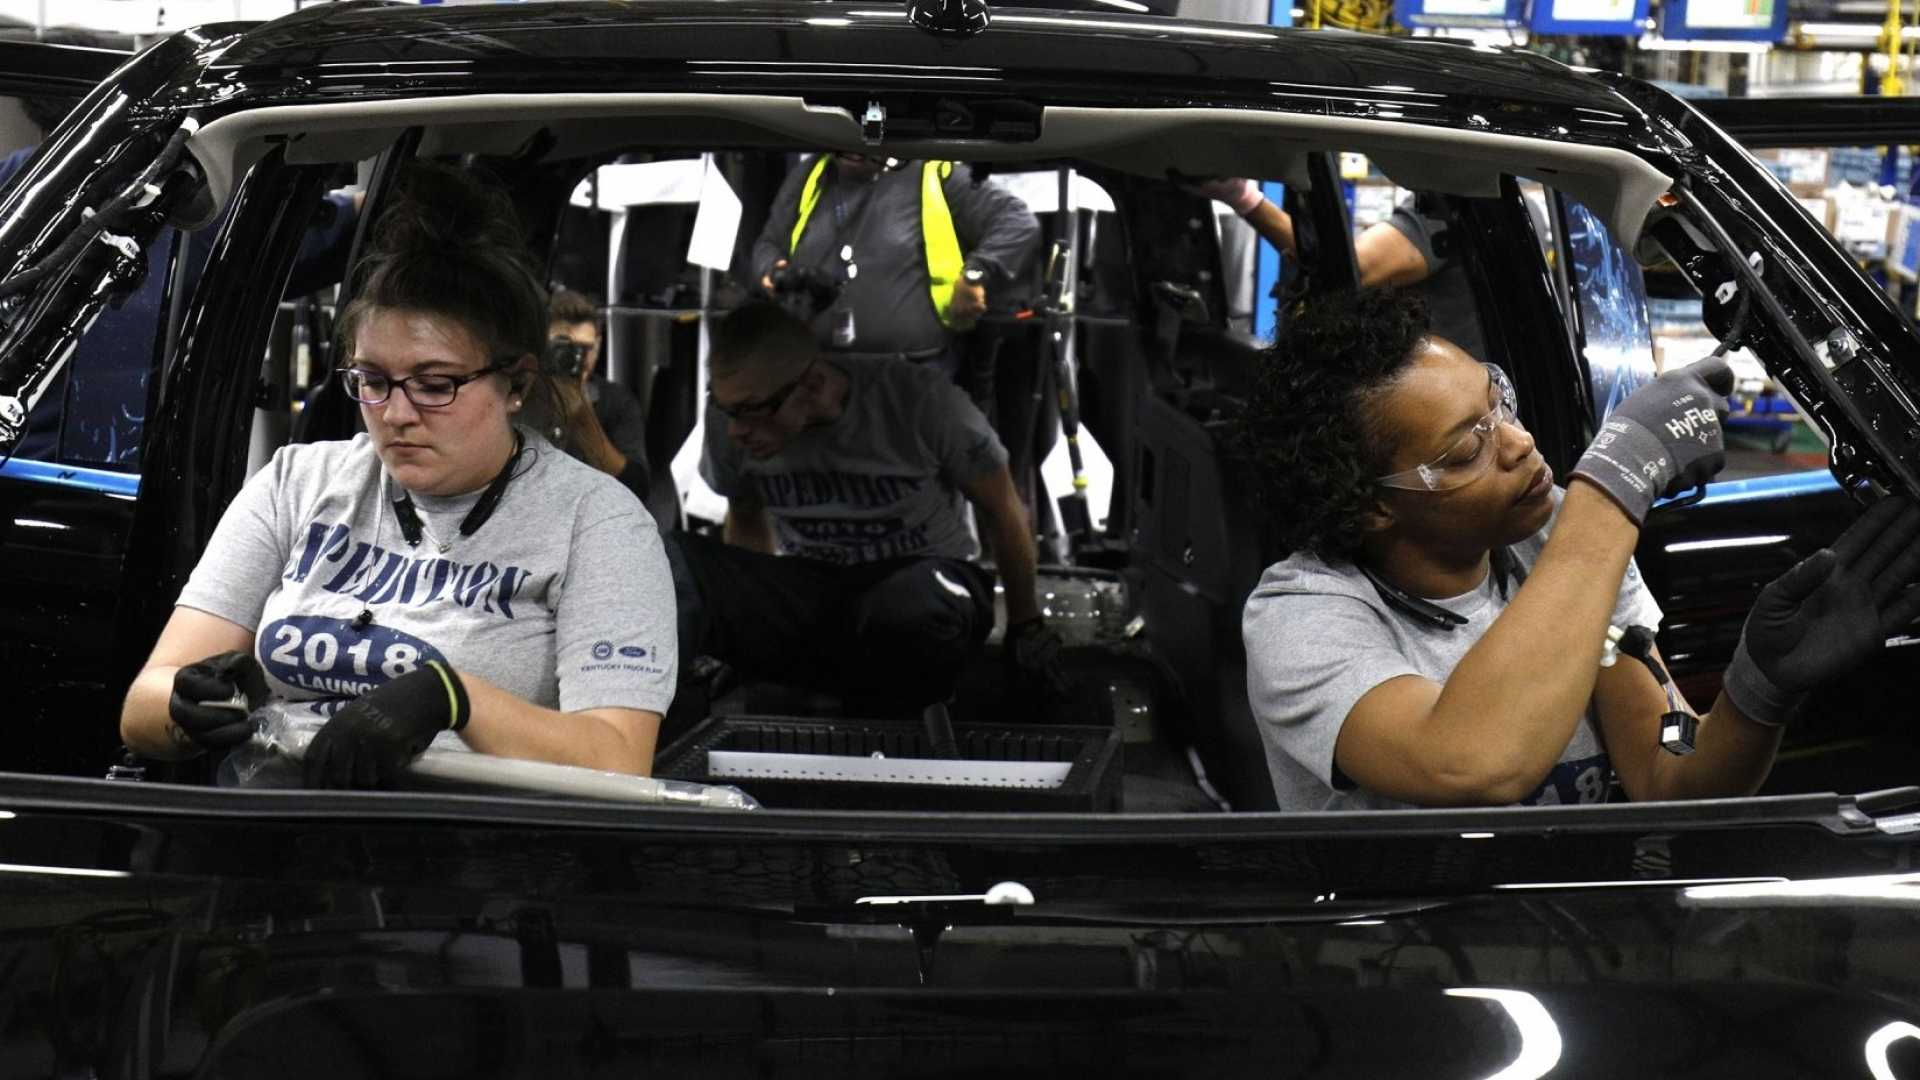 Building a 2018 Ford SUV at a Kentucky plant